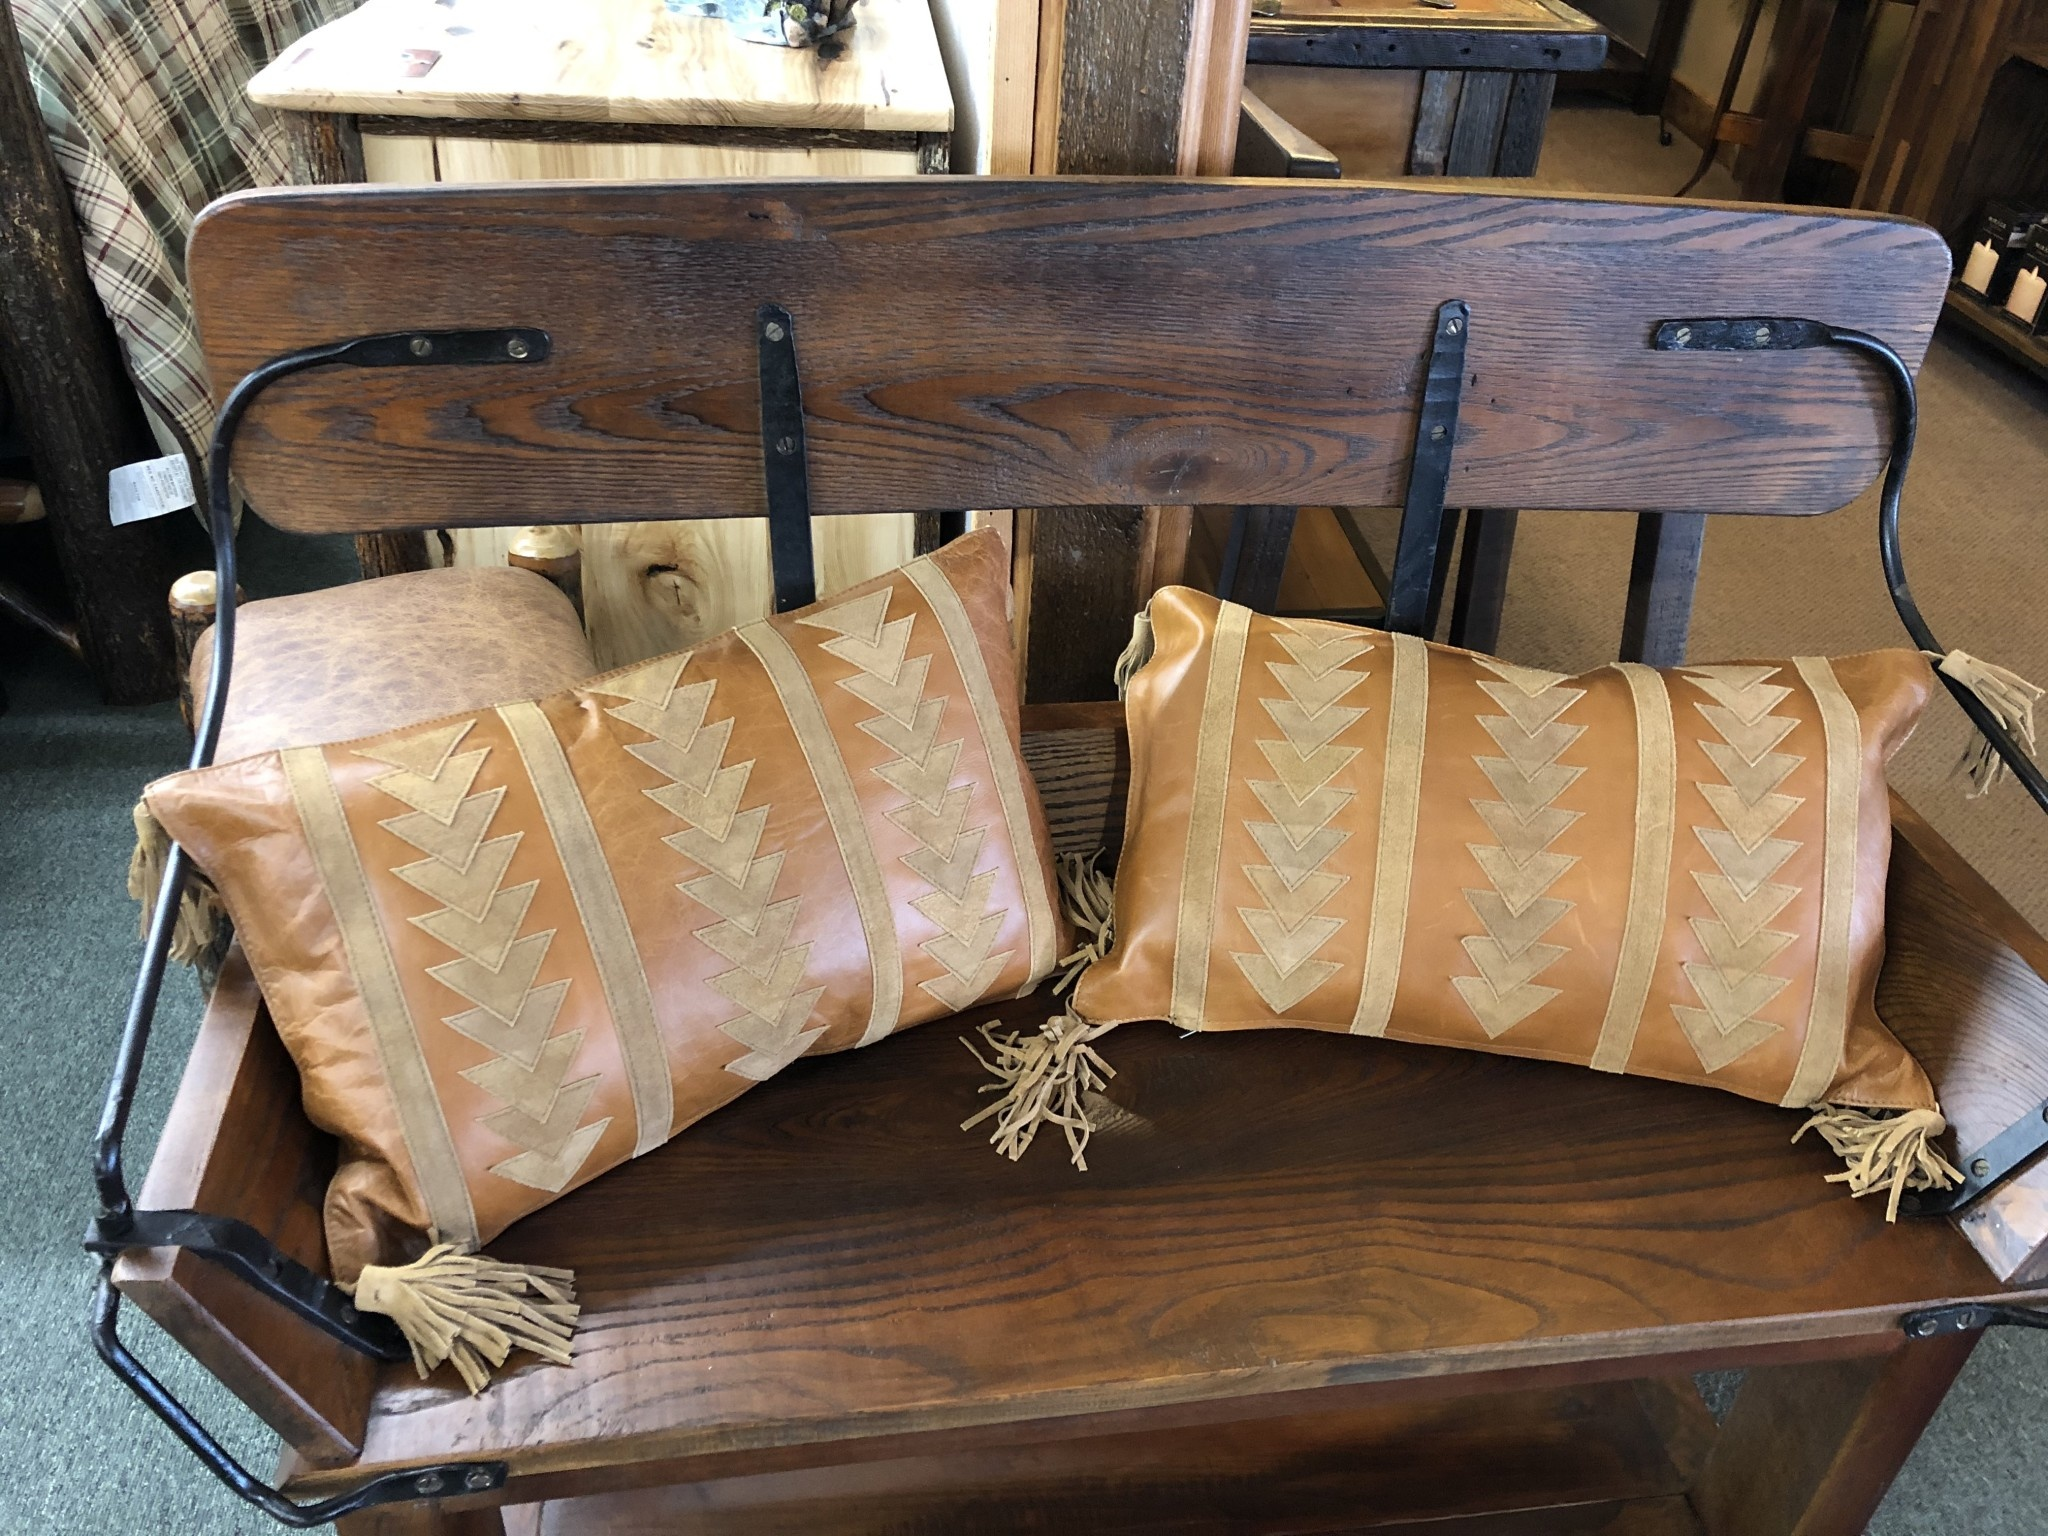 Hiend Arrow Design Leather Pillow w/Tassels 16x24